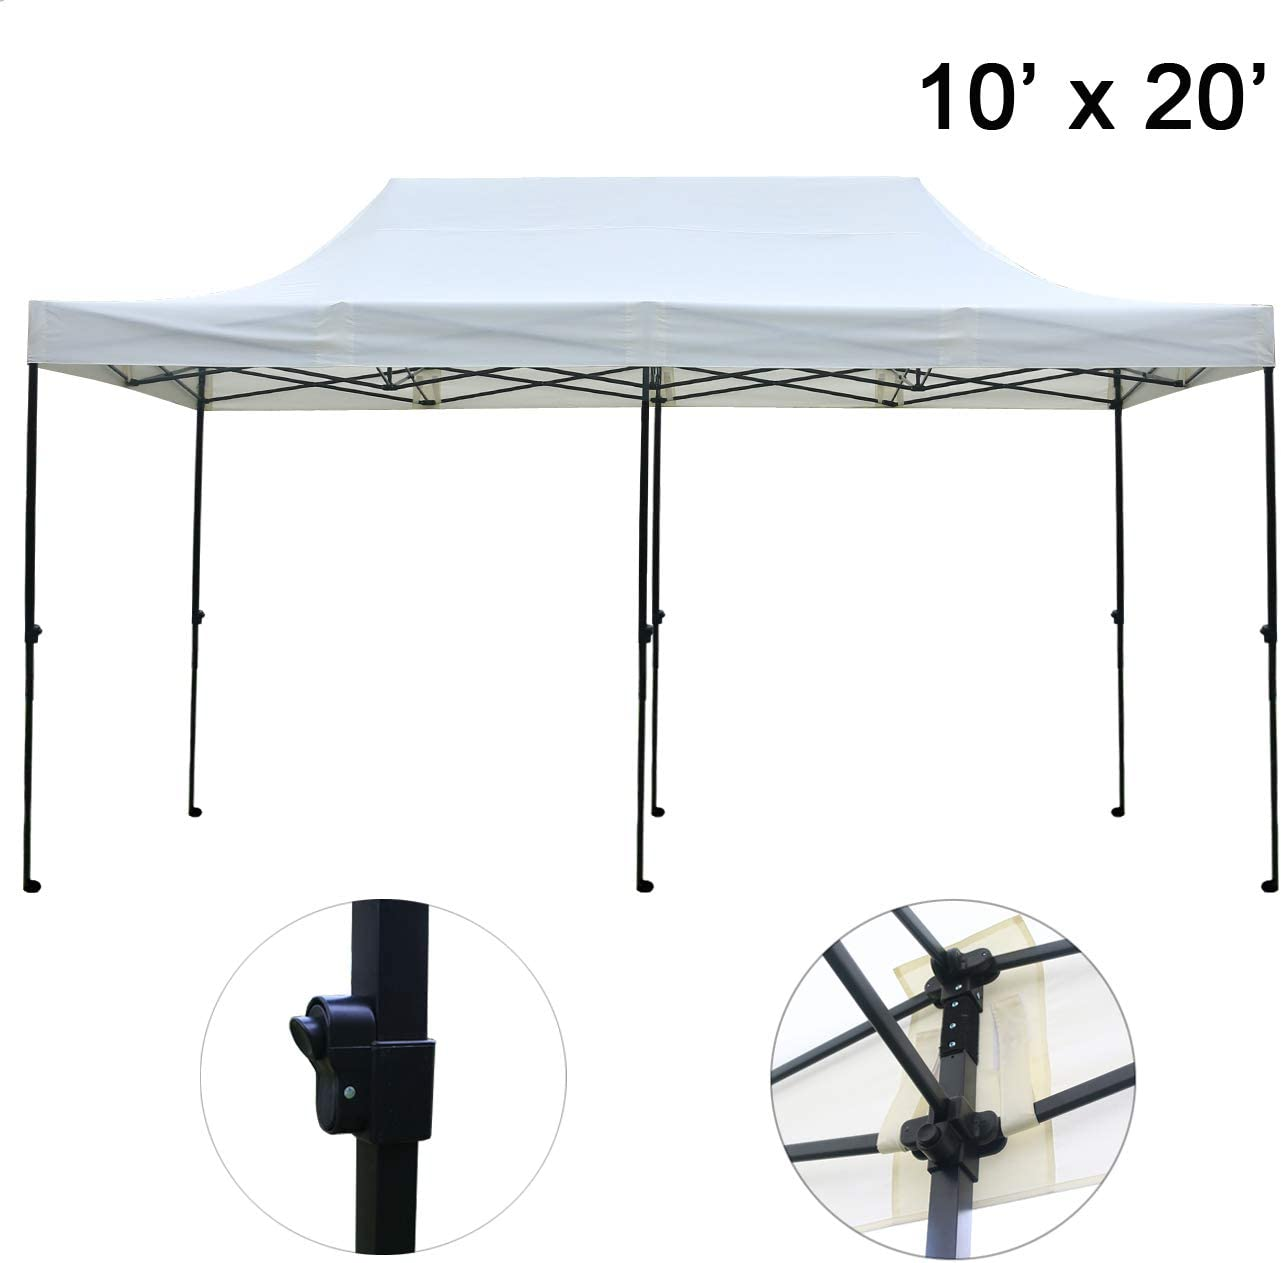 Sunnyglade 10 x20 Pop-up Canopy Tent Commercial Instant Tents Market Stall Portable Shade Instant Folding Canopy